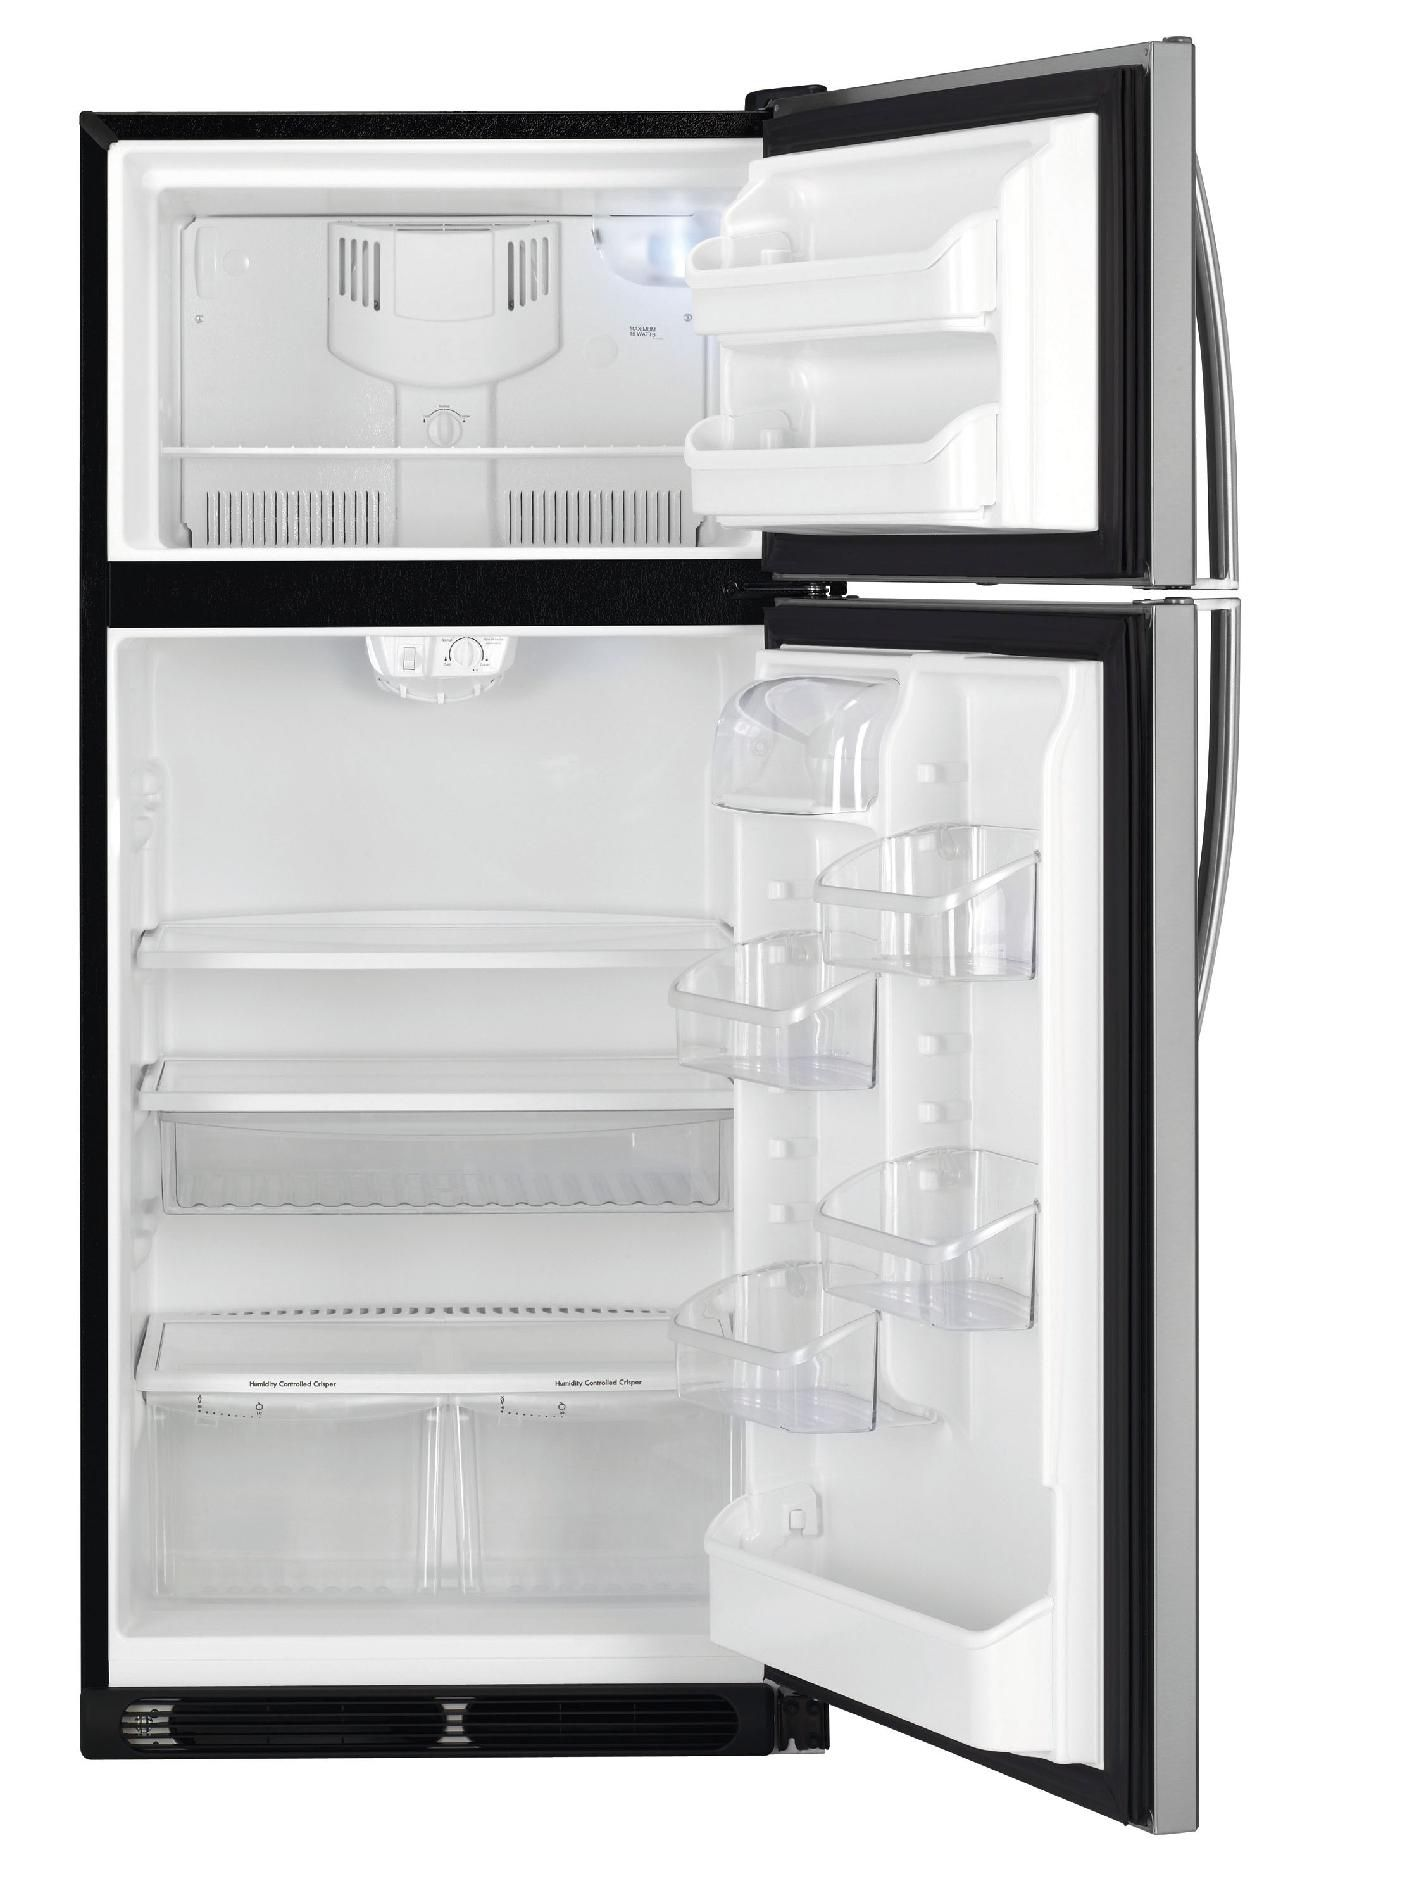 Kenmore 18 cu. ft. Top Freezer Refrigerator - Stainless Steel